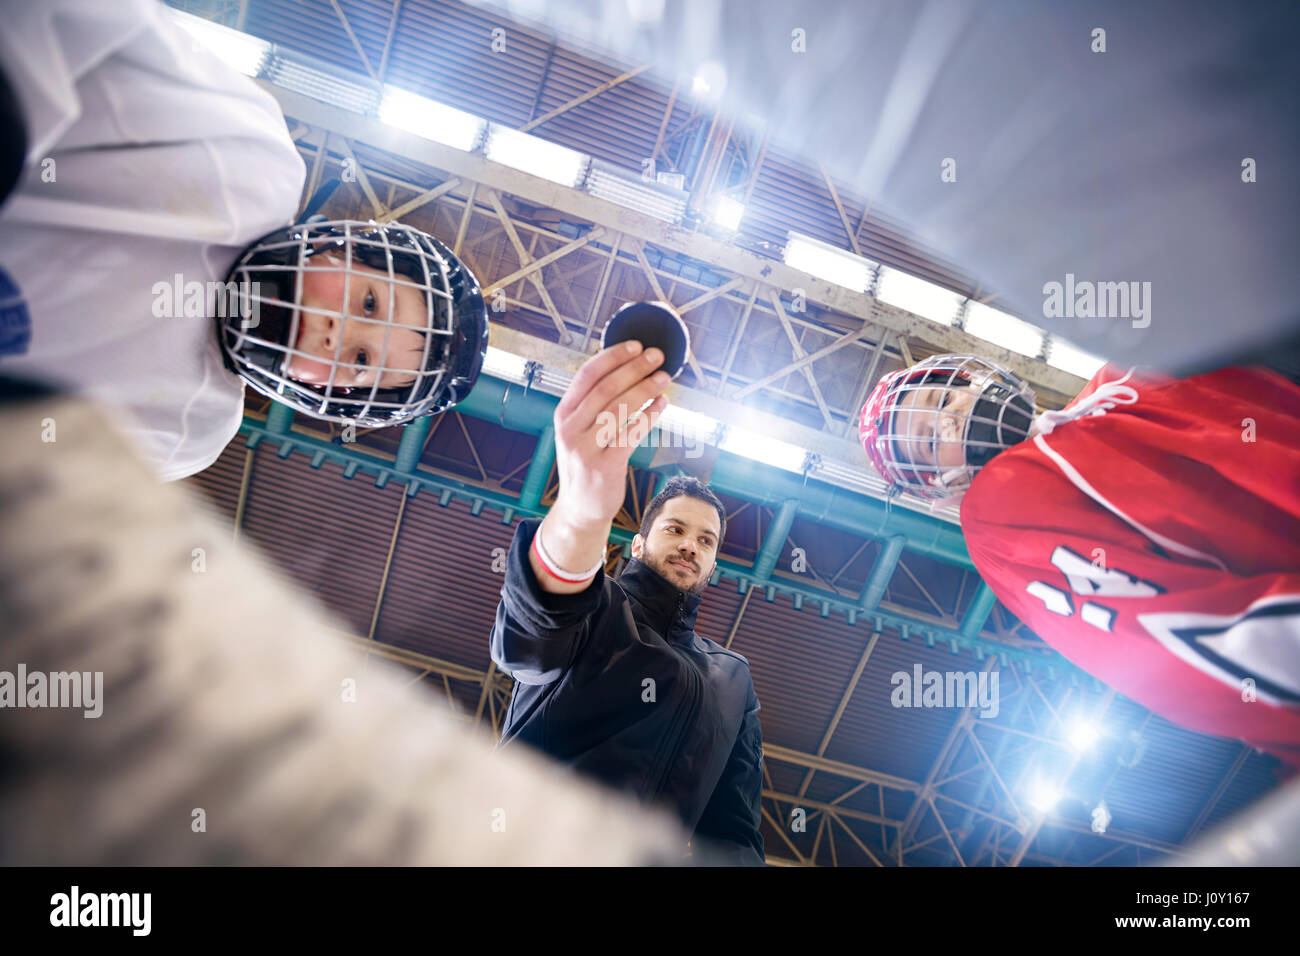 players beginning ice hockey games - Stock Image